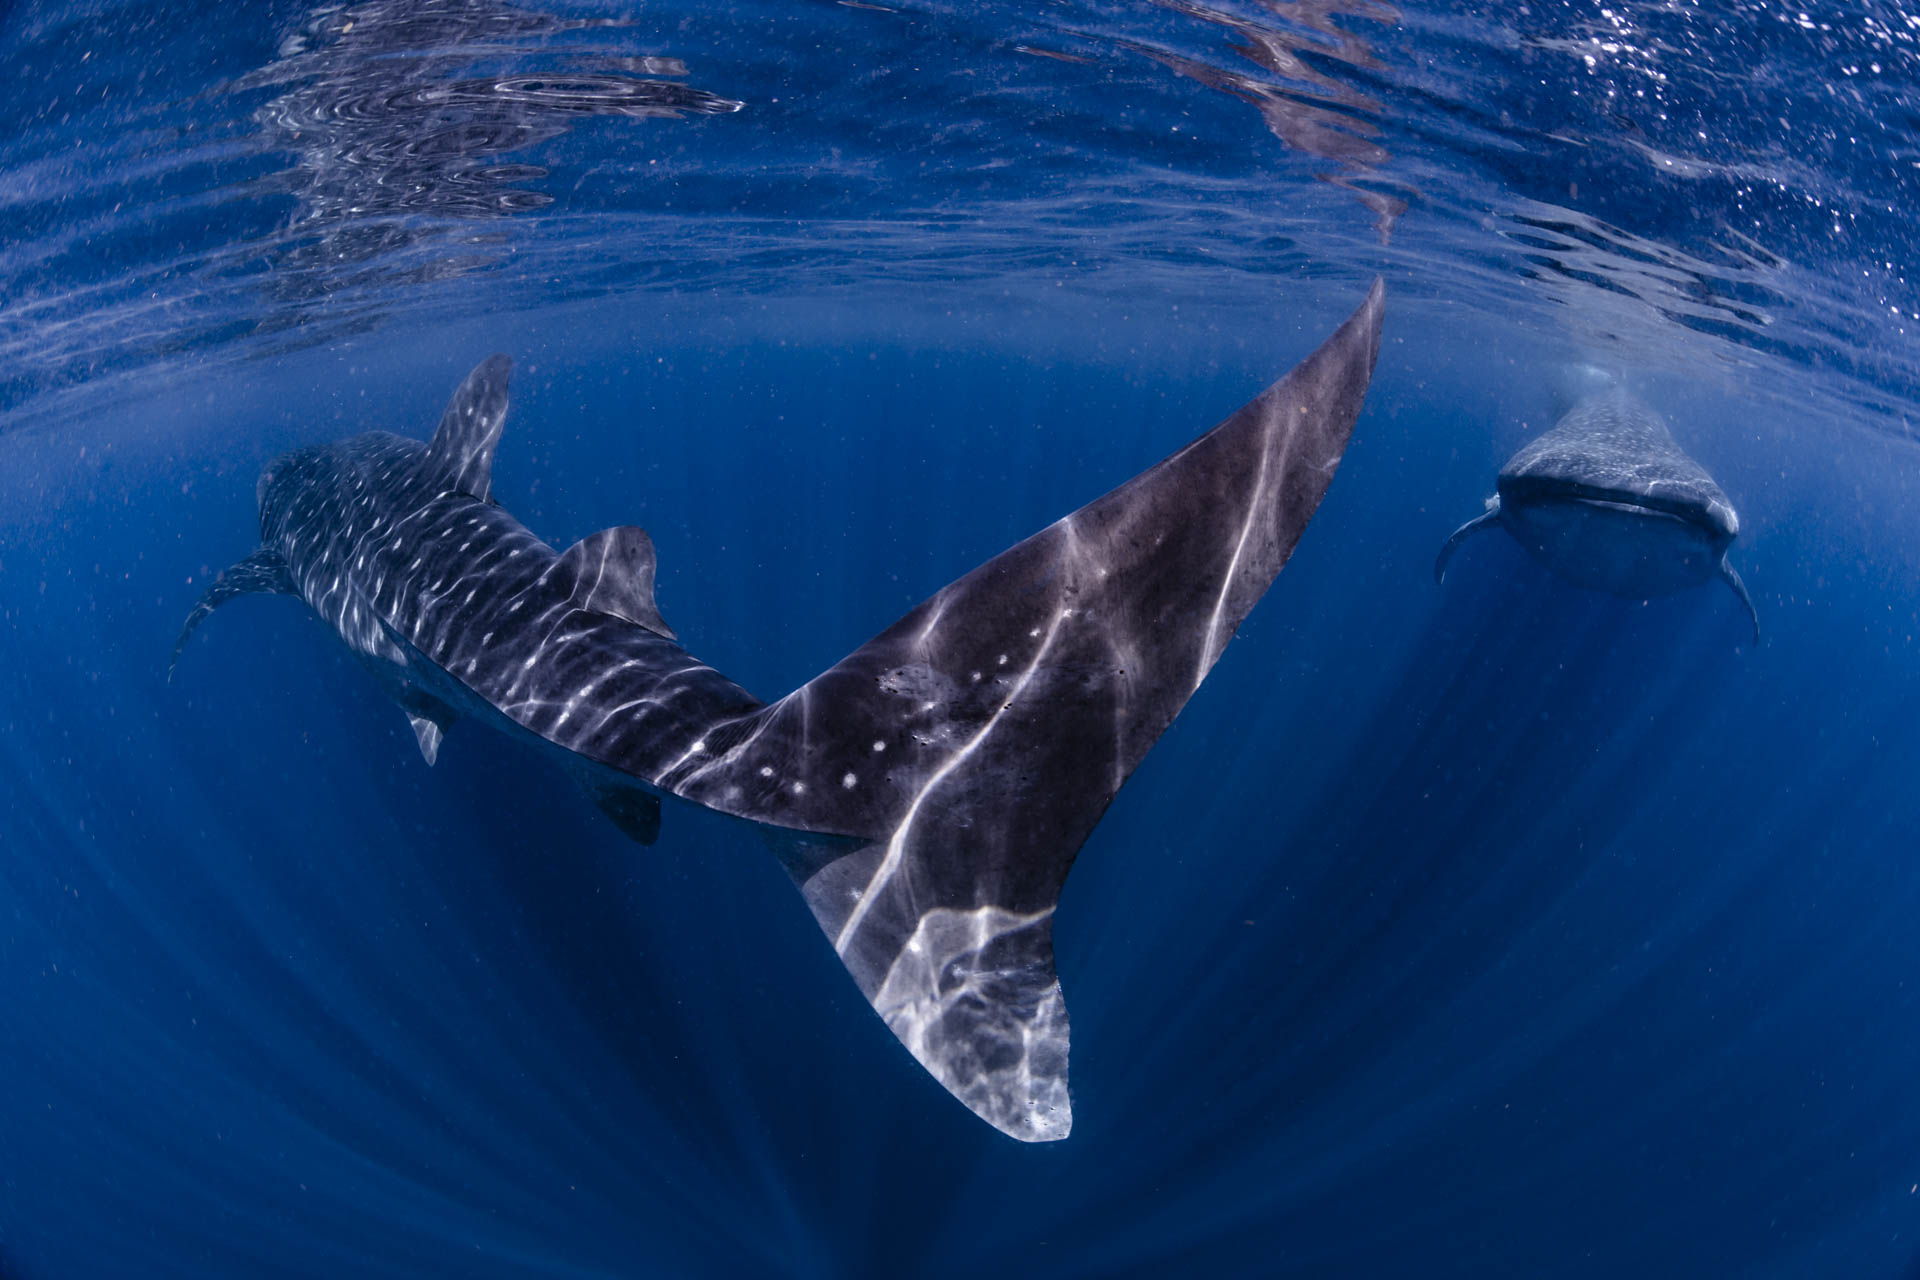 two whale sharks feeding on the surface